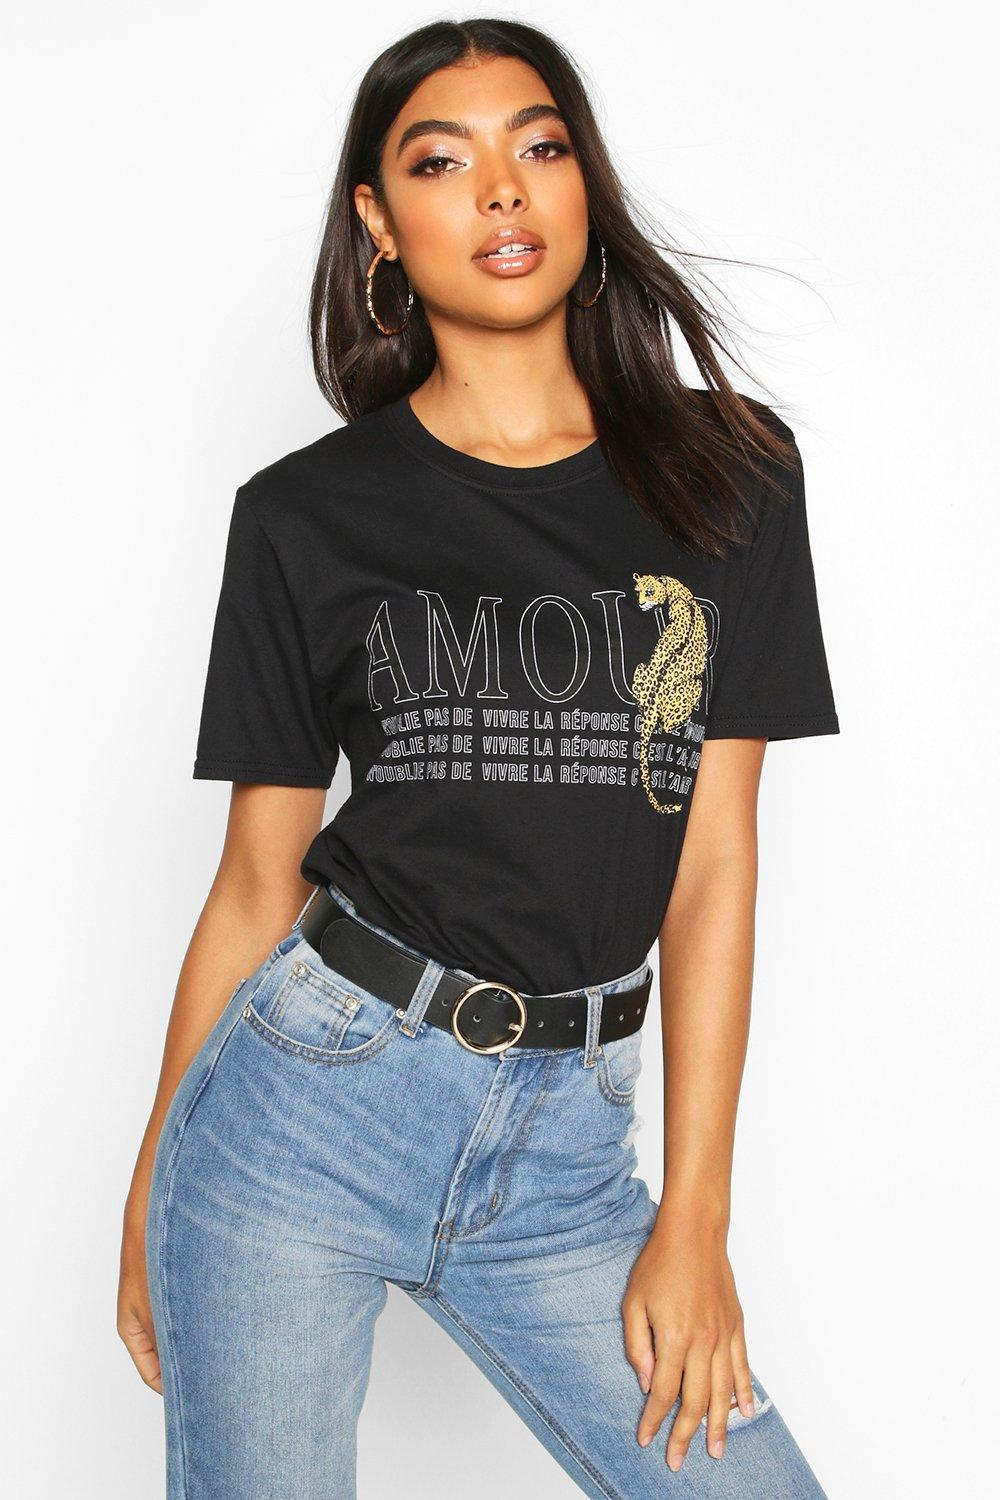 Womens Tall 'Amour' Slogan T-Shirt - black - S, Black - Boohoo.com